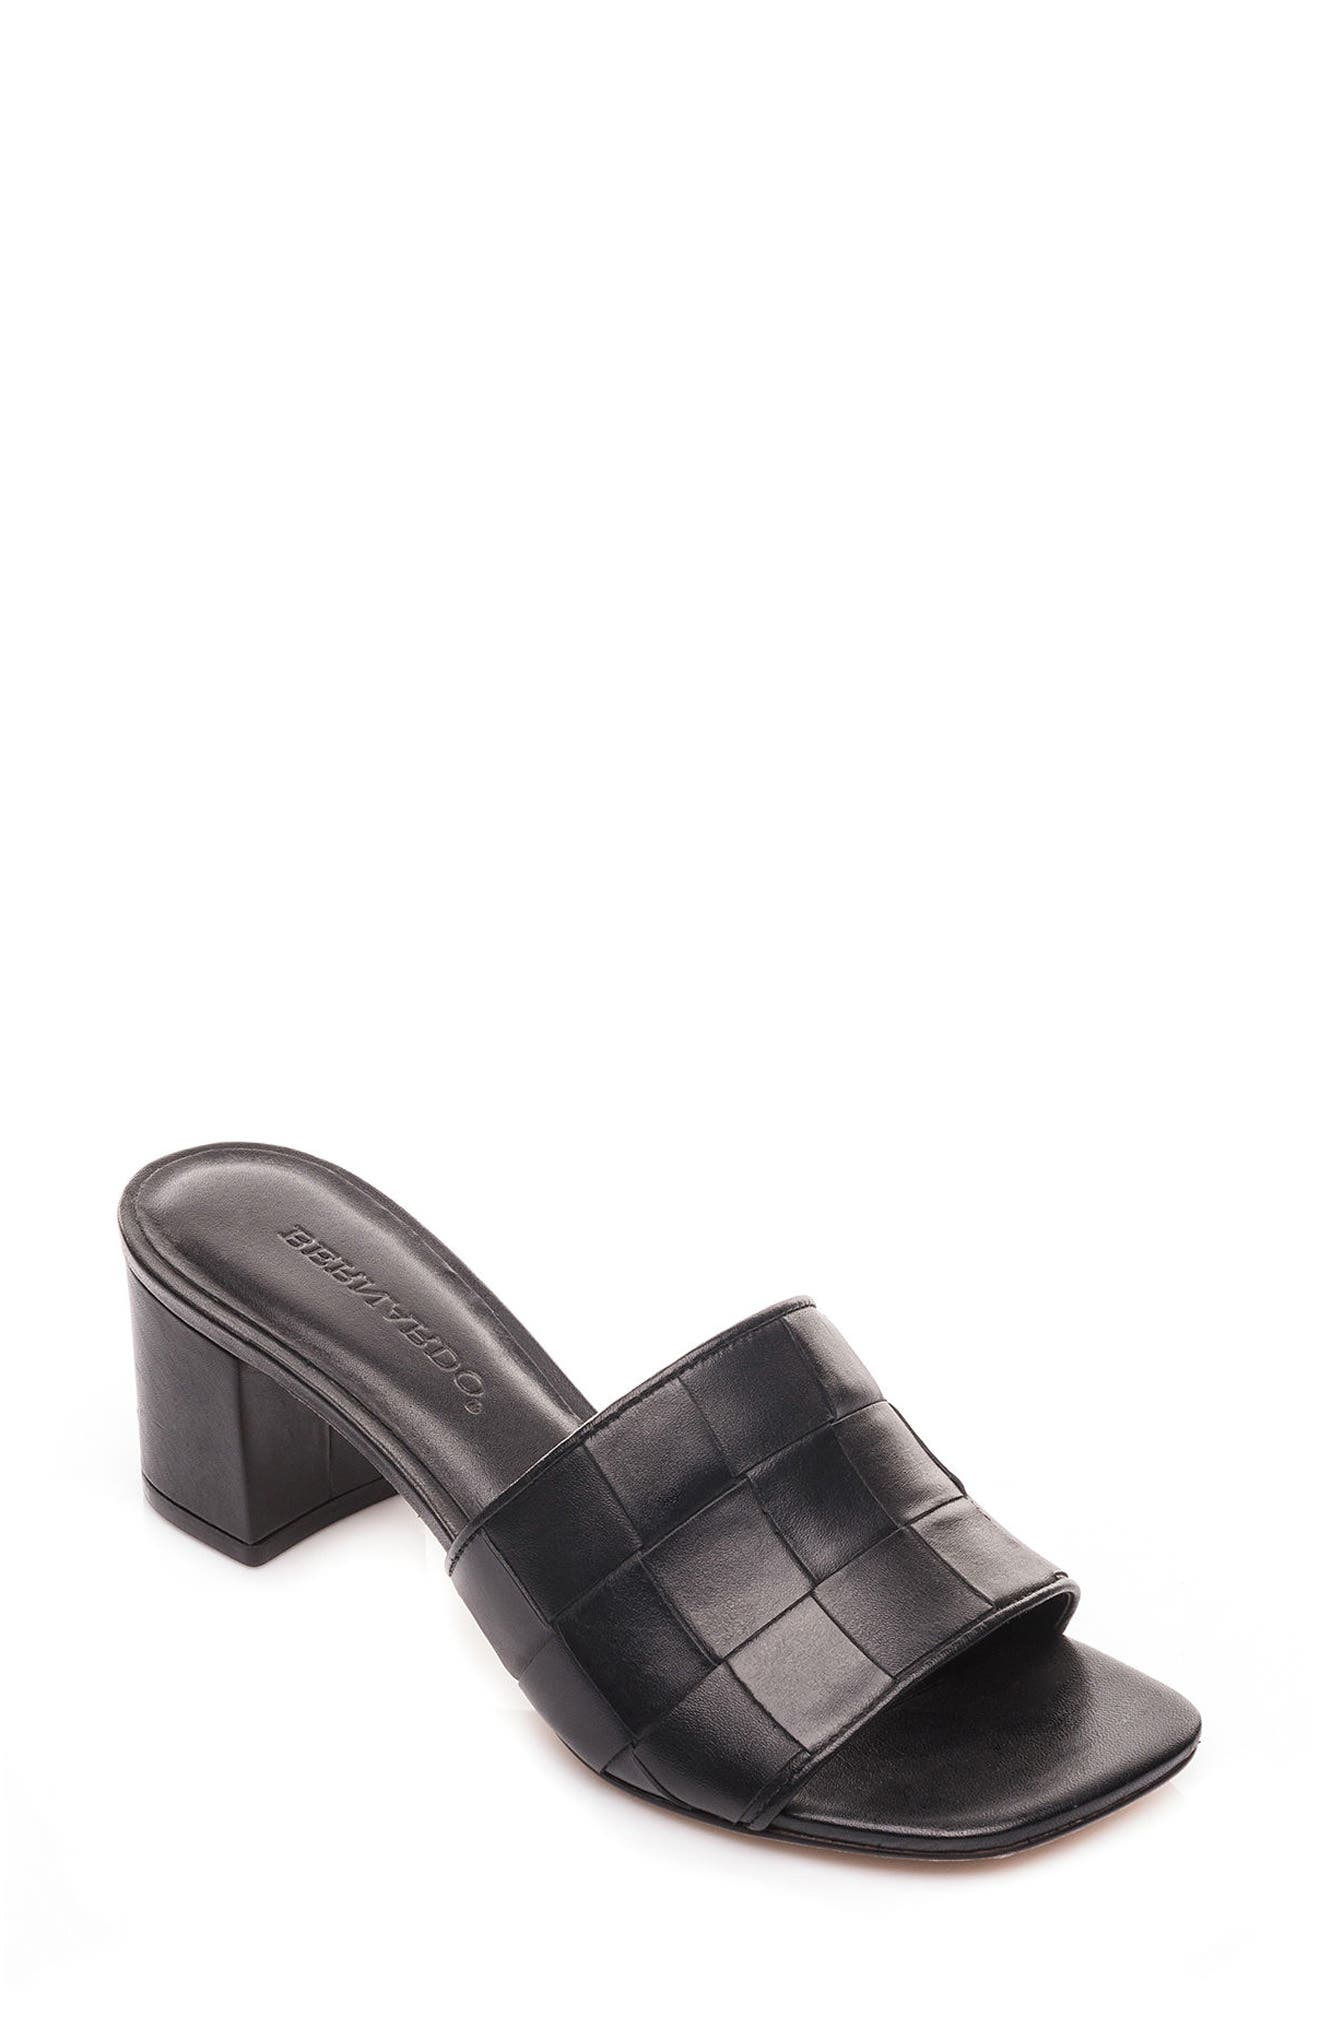 Bernardo Bridget Block Heel Sandal,                             Main thumbnail 1, color,                             001